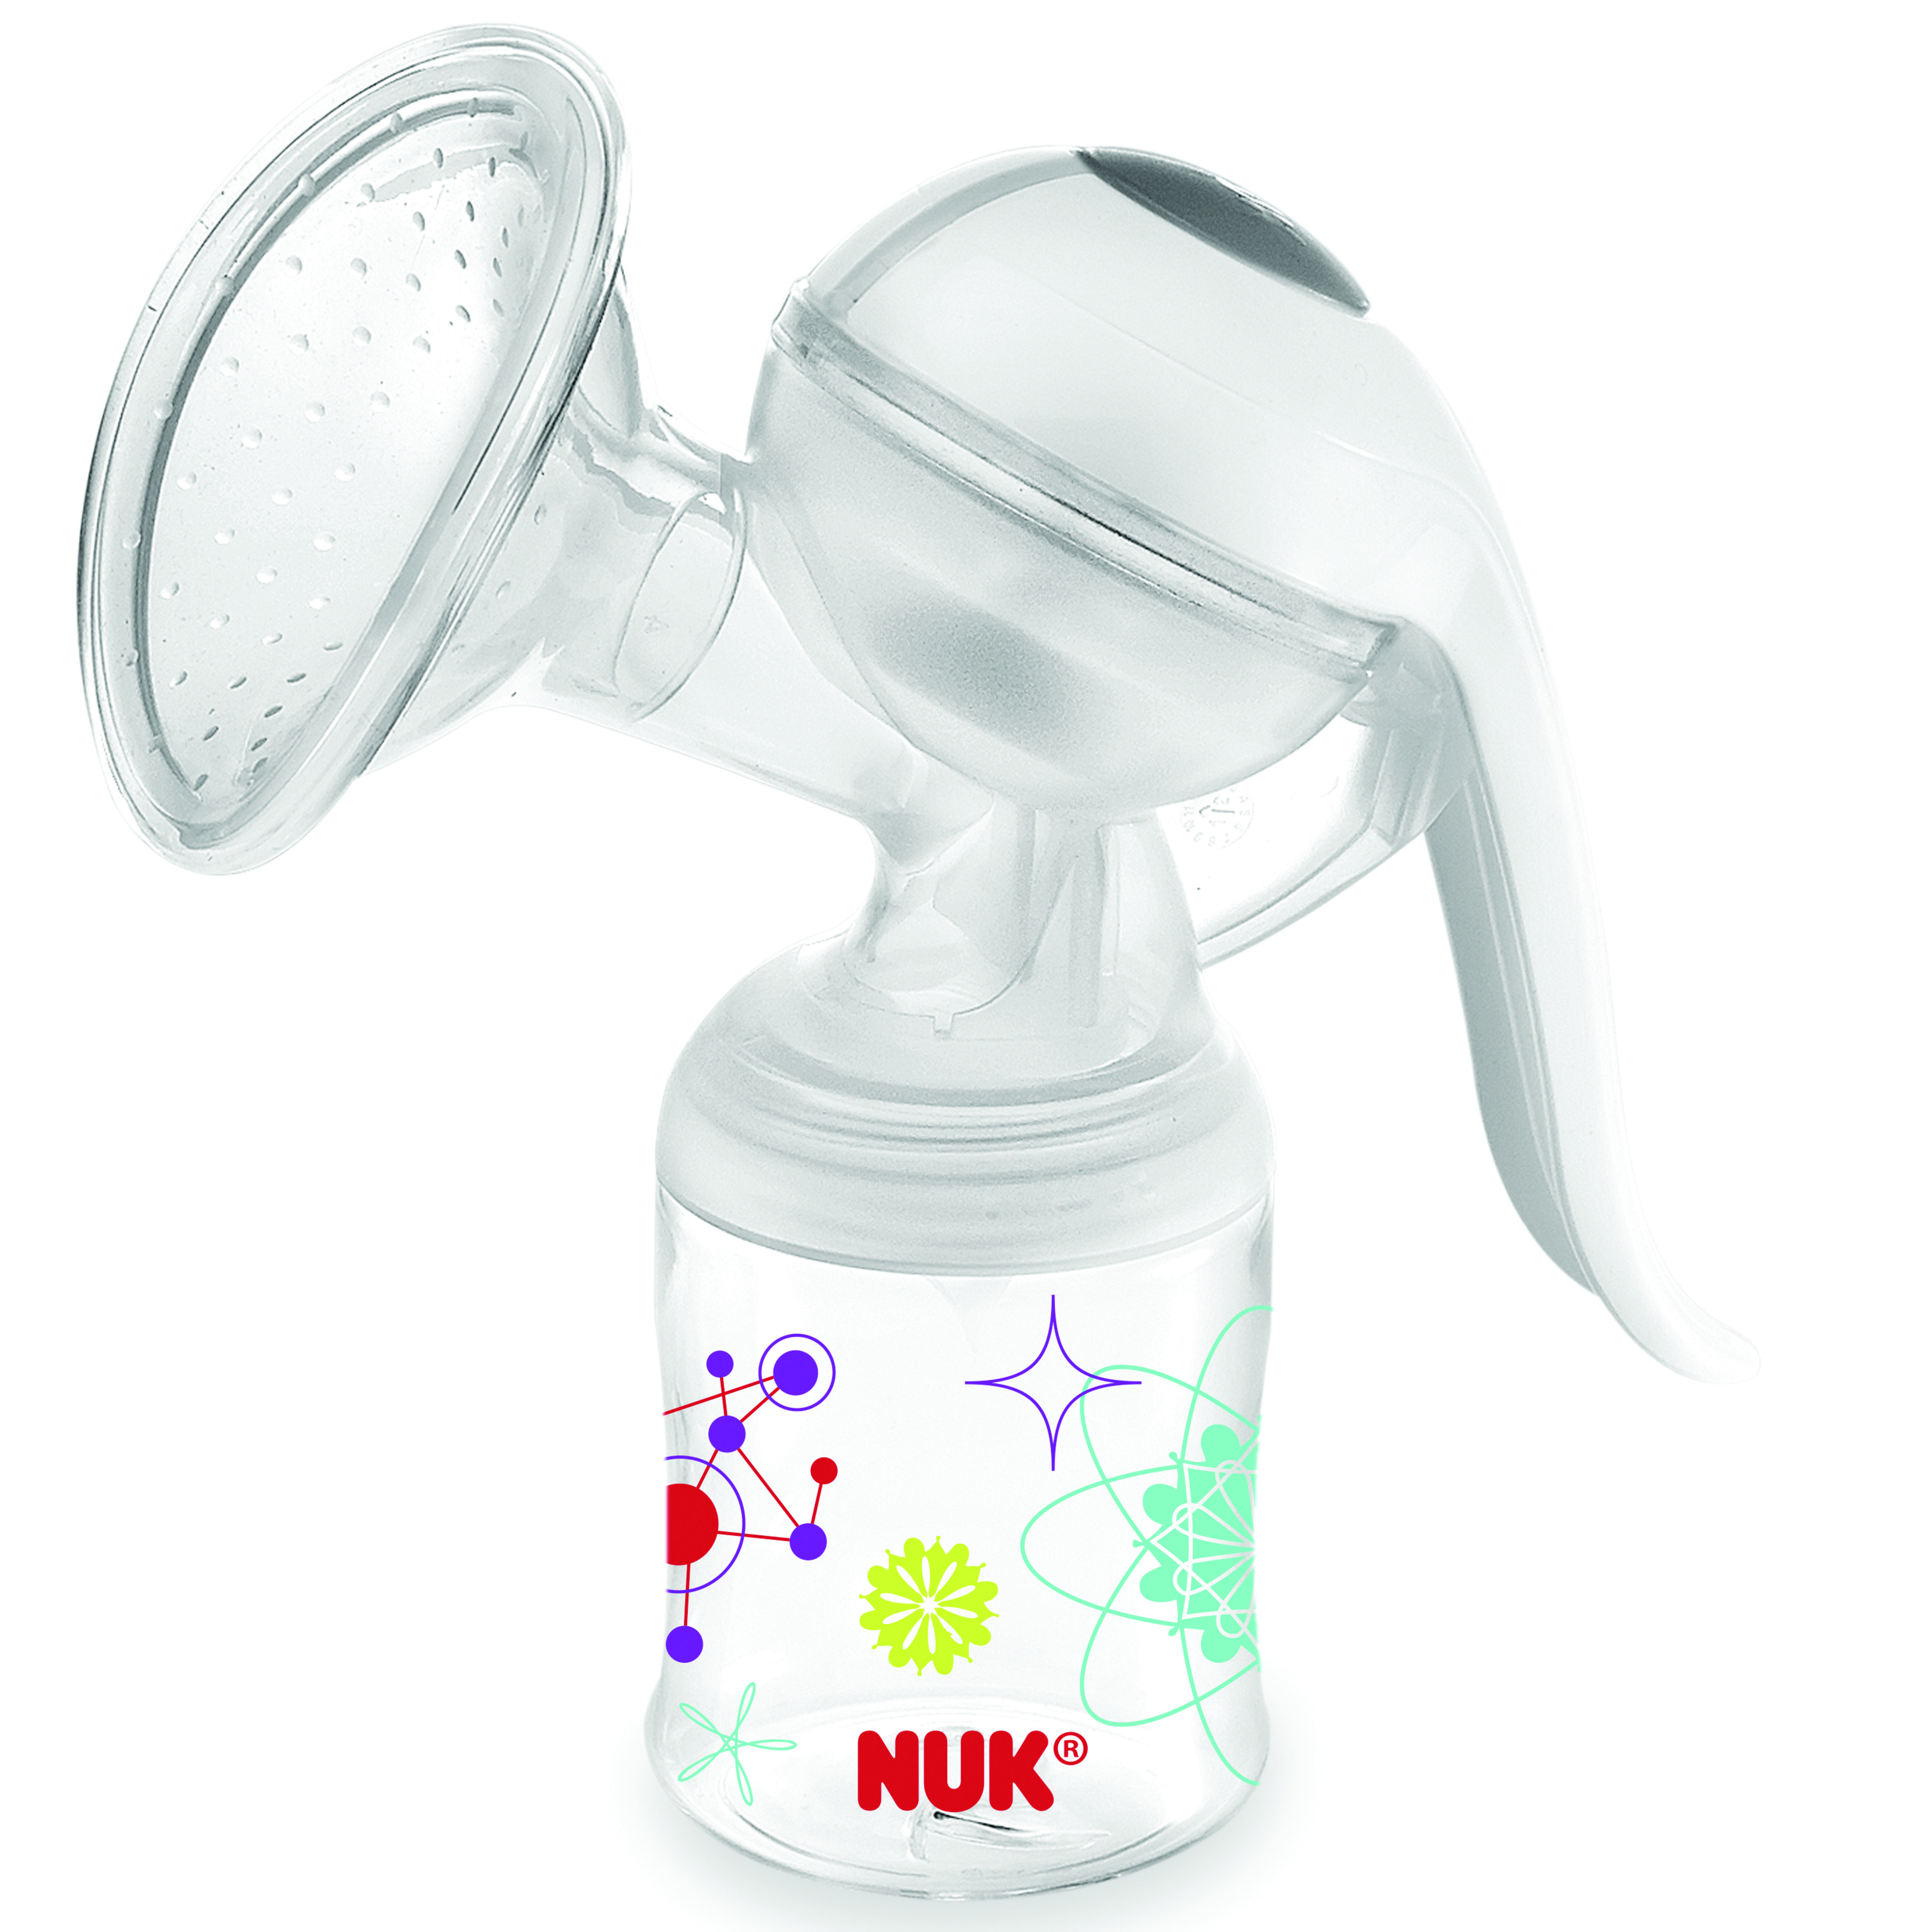 NUK Manual Breast Pump, 1.0 CT